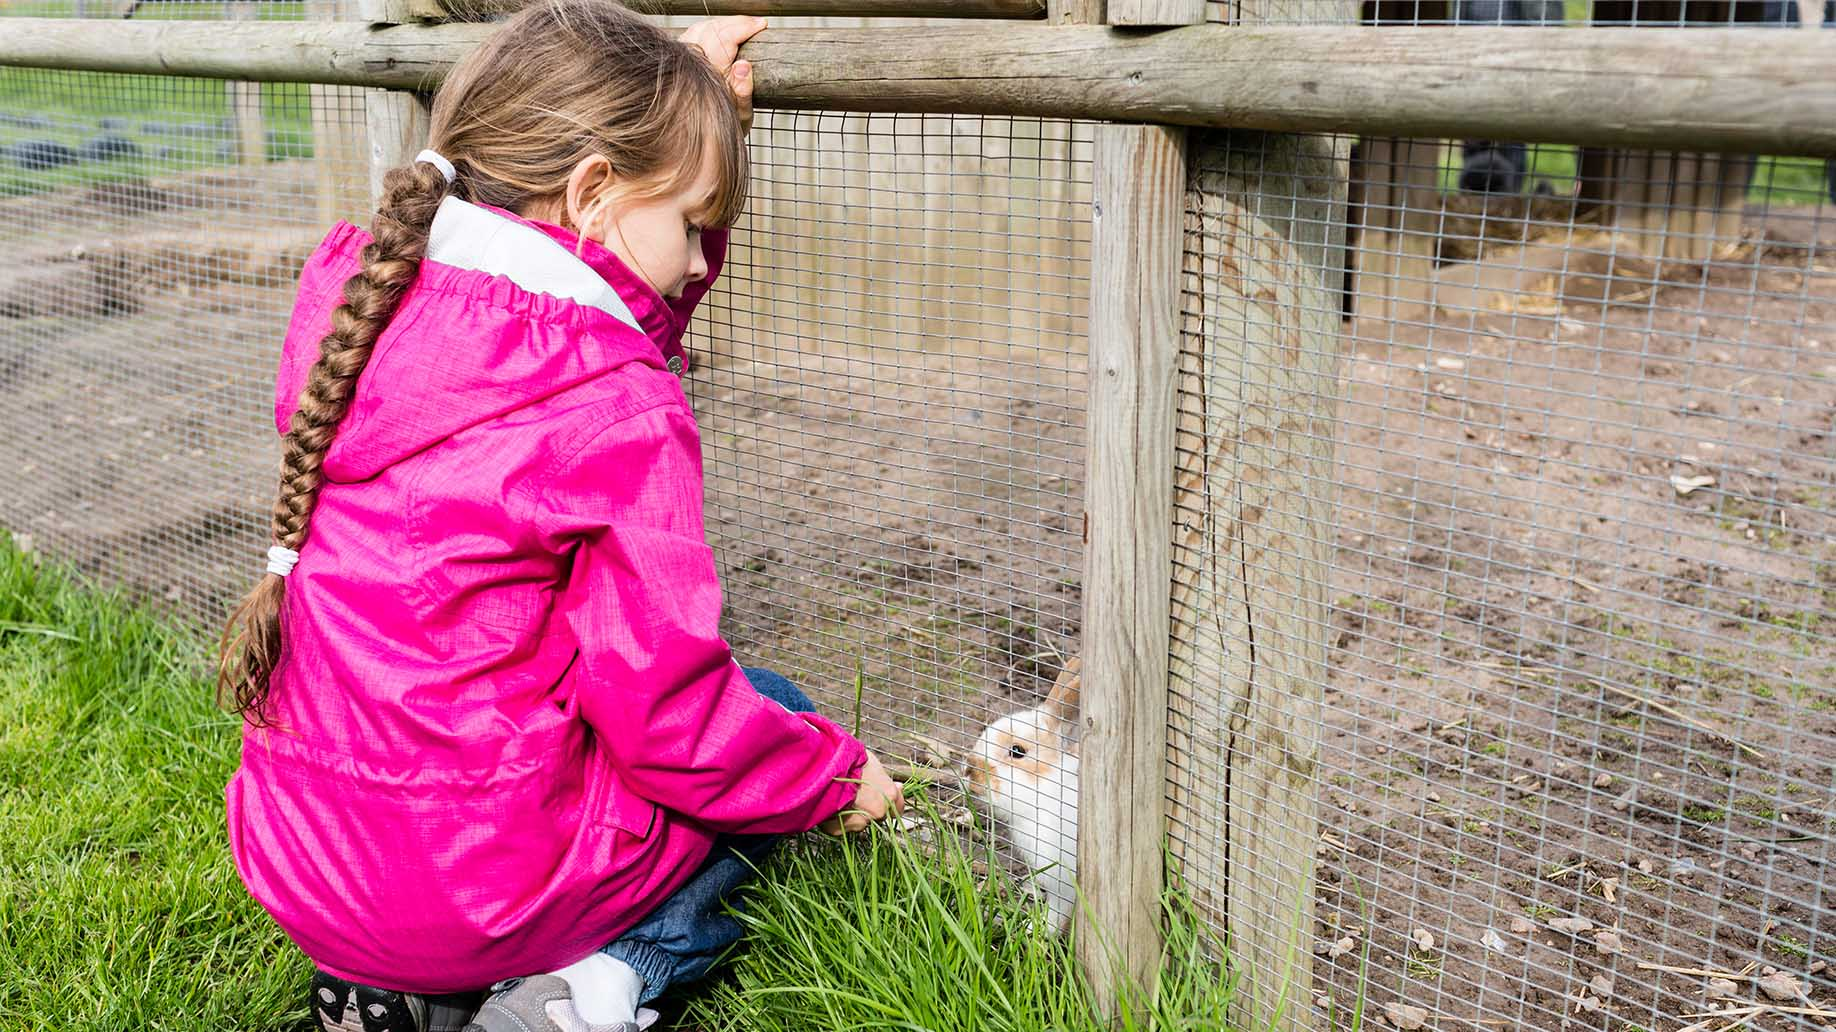 kid feeding rabbit-green grass